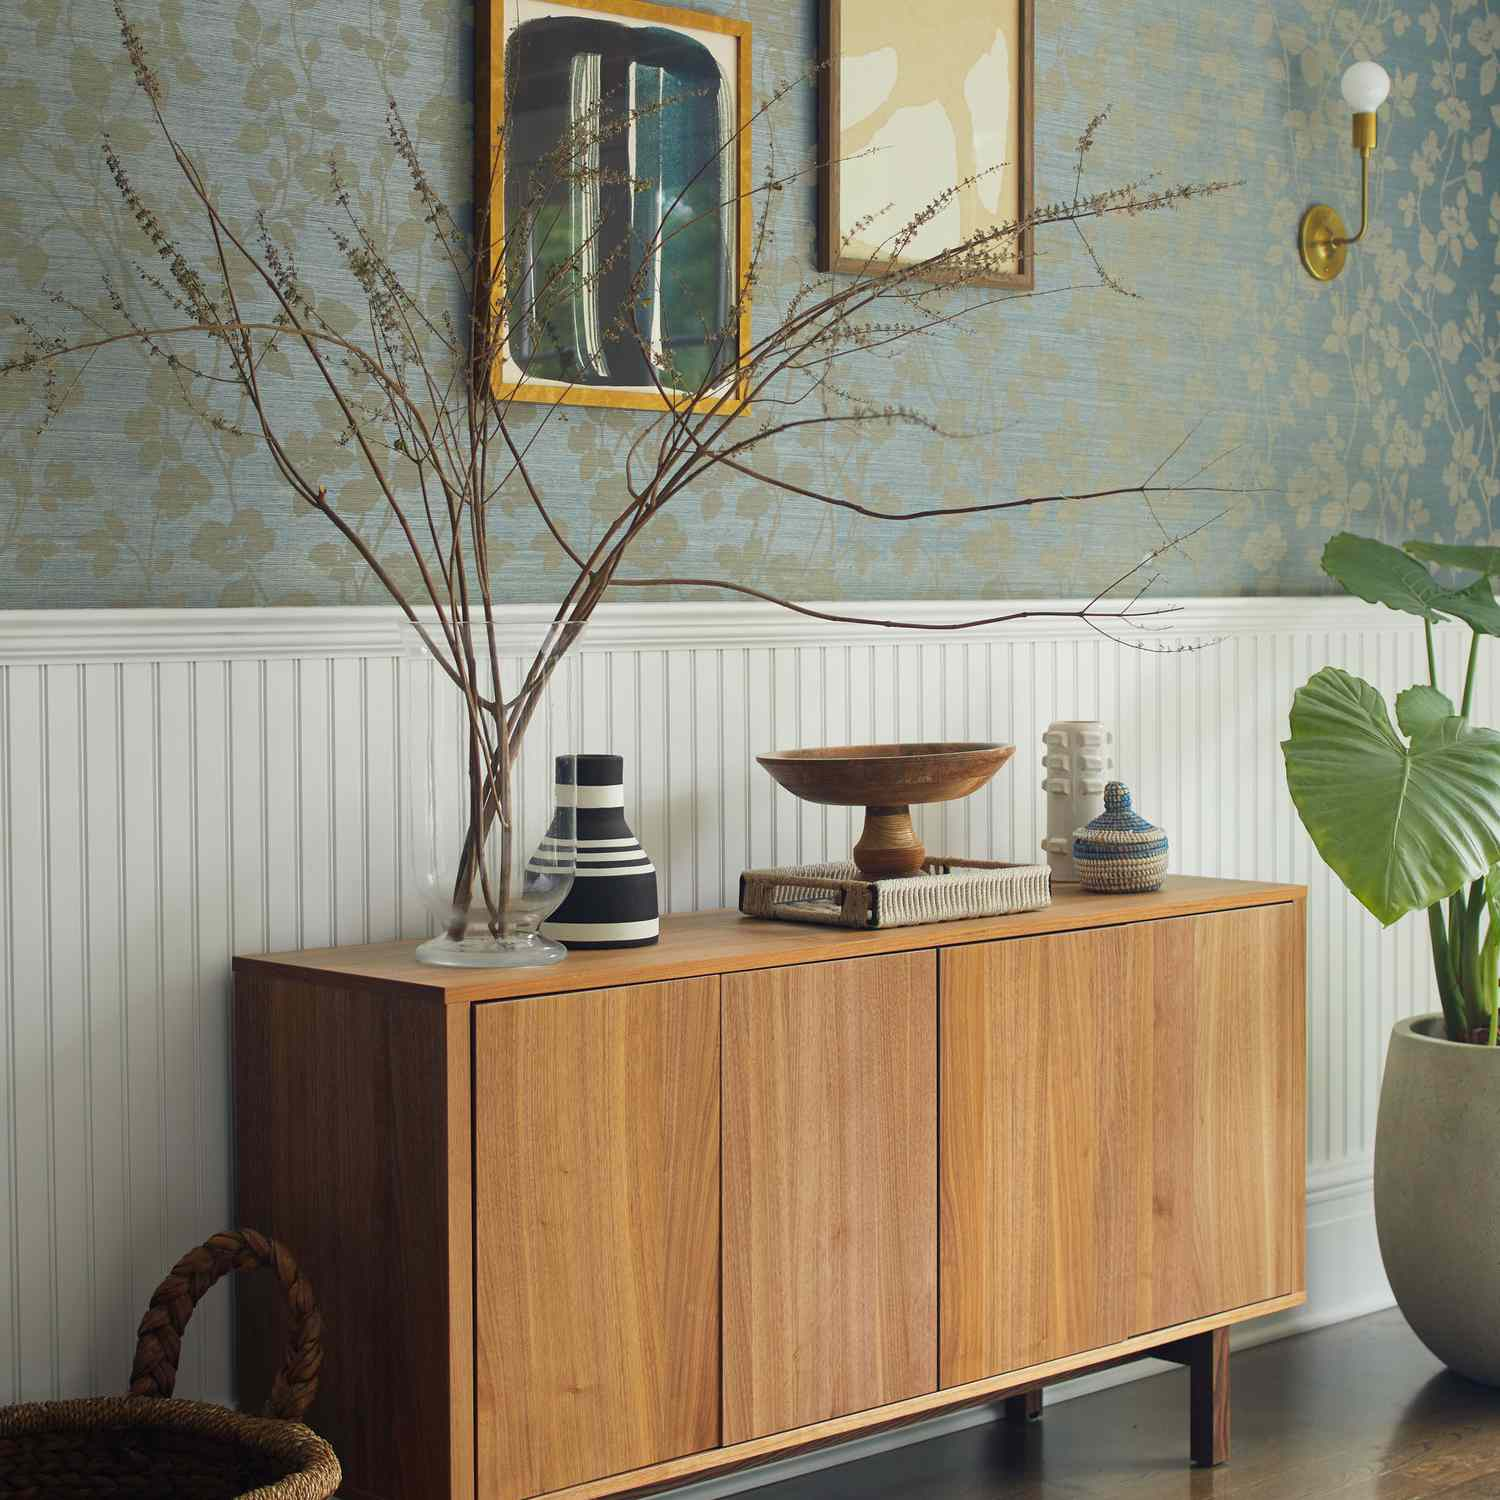 A midcentury modern console table placed in a room lined with light blue wallpaper